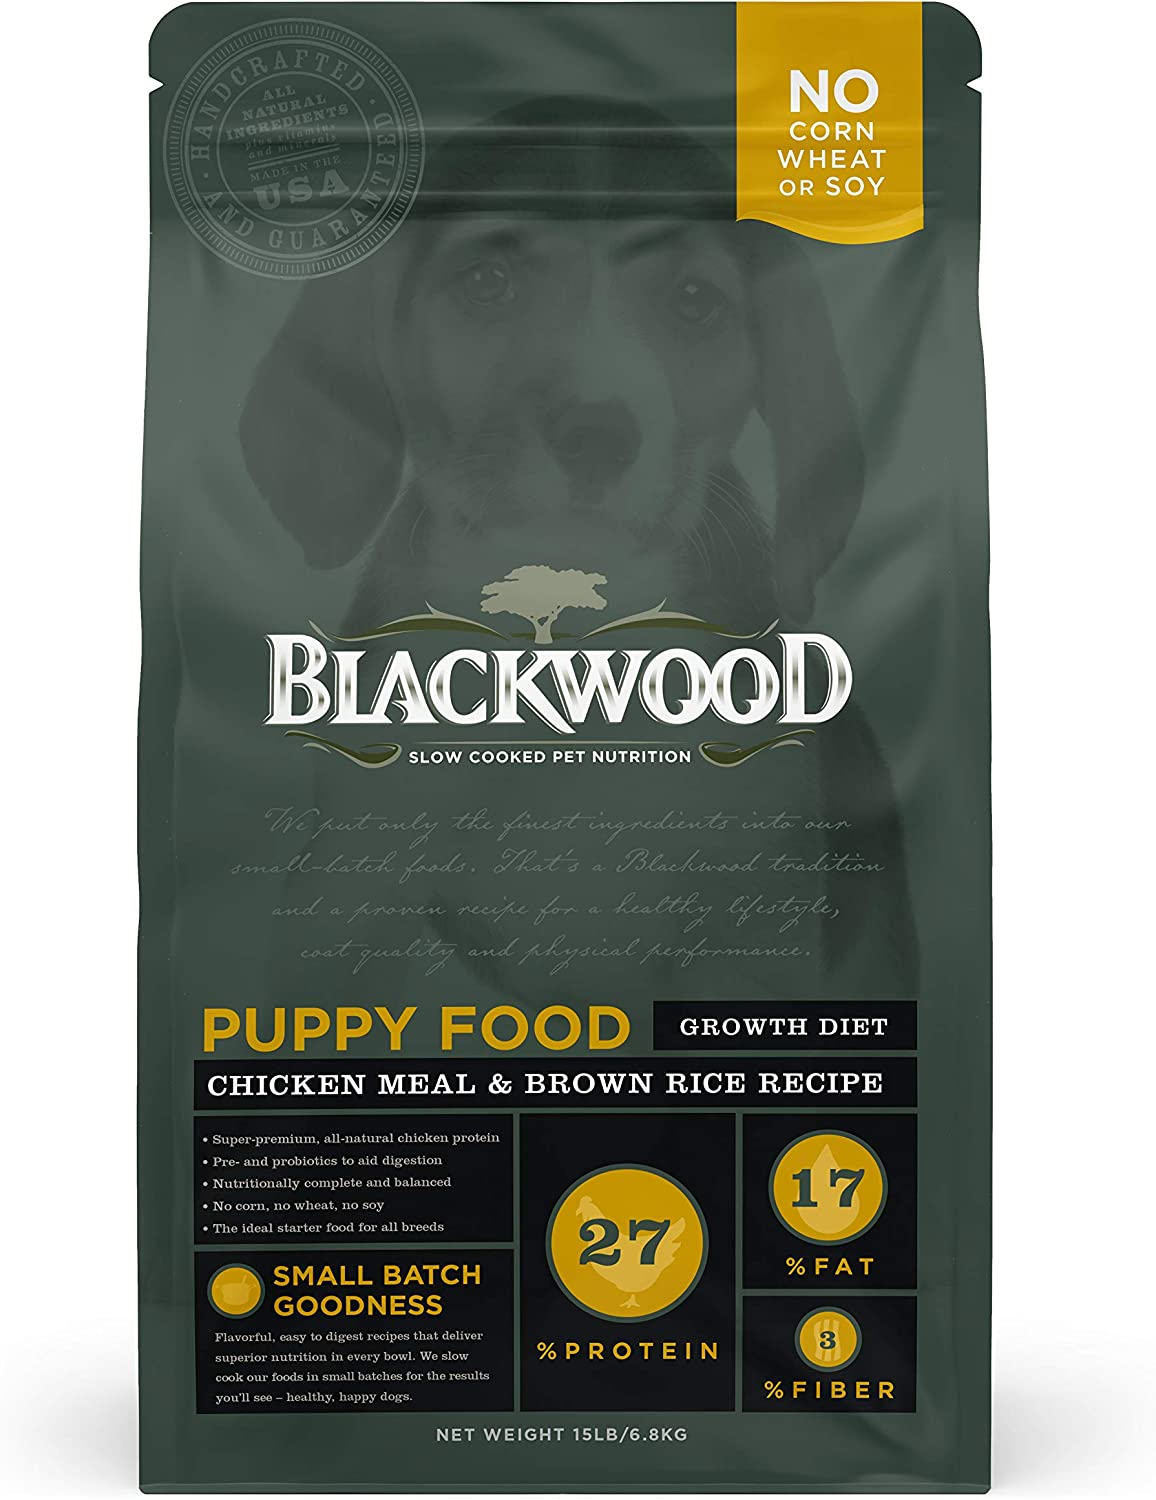 Blackwood Puppy Dry Dog Food Growth Diet [Natural Dog Food For All Breeds and Sizes of Puppies], Chicken Meal & Brown Rice Recipe, 15 lb. bag